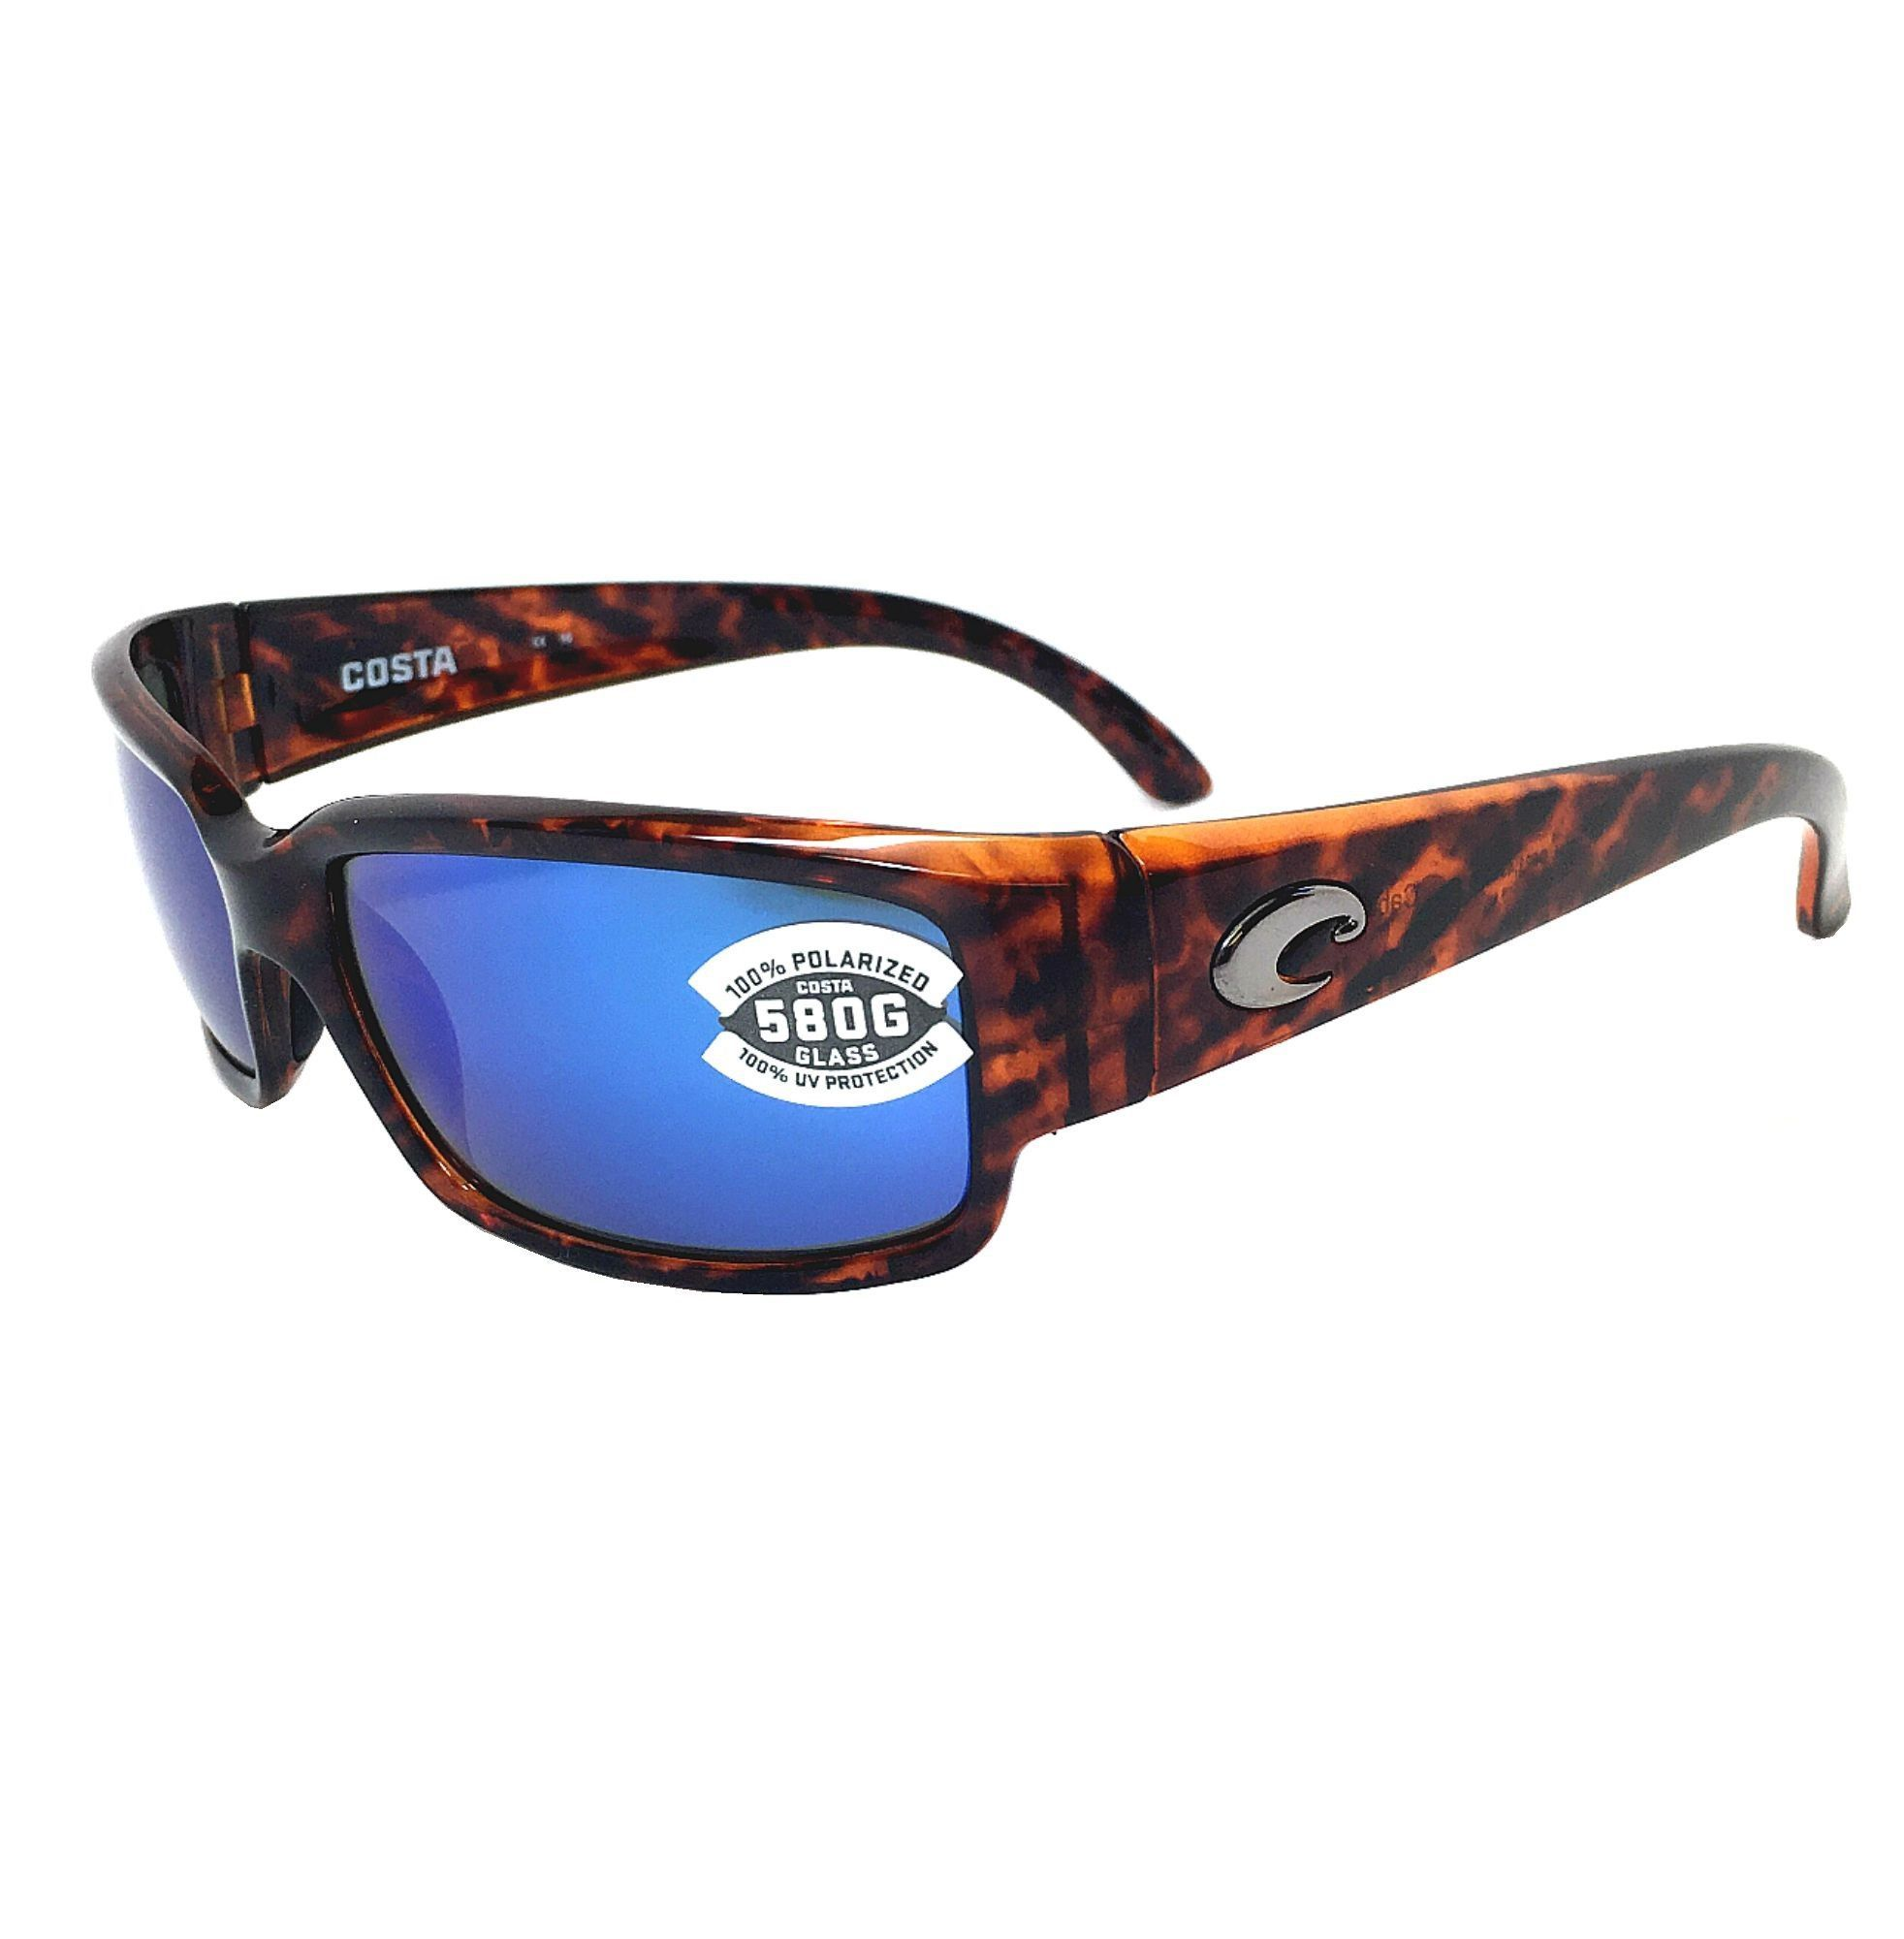 Costa Del Mar Caballito 580G Shiny Tortoise   Blue Mirror Polarized ... 1bed520cd3e2